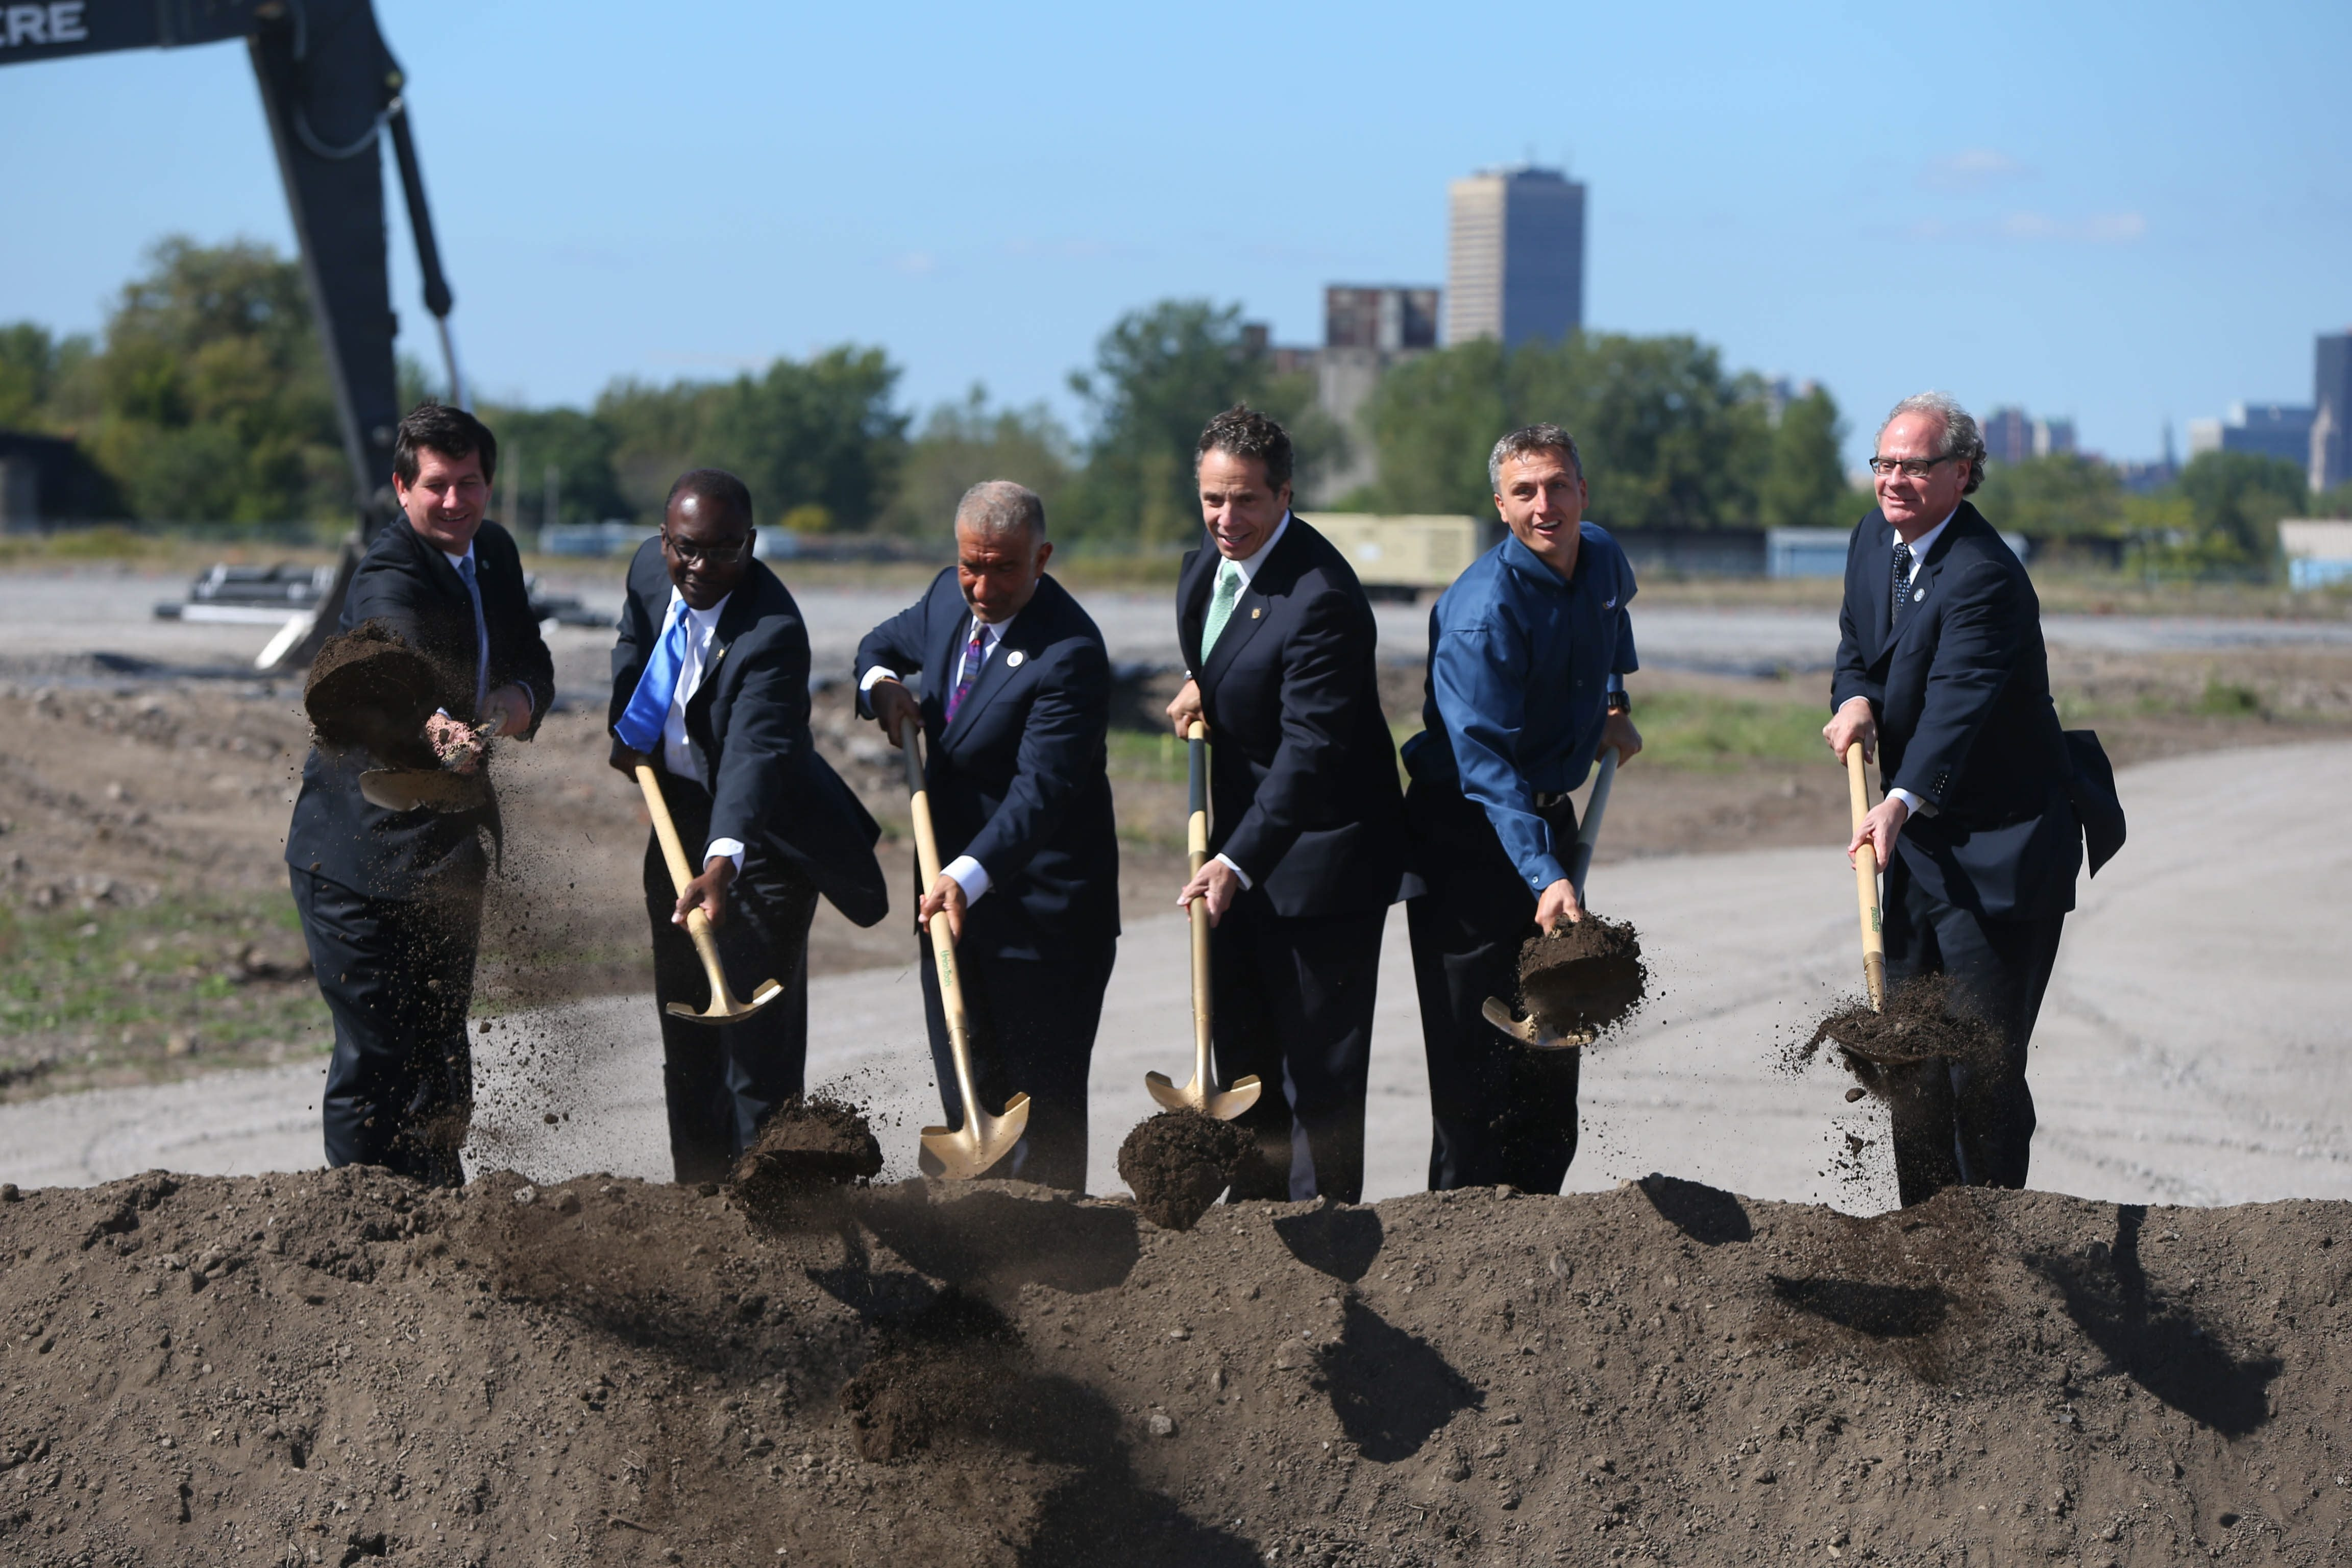 Government and company officials break ground for the SolarCity factory at RiverBend.